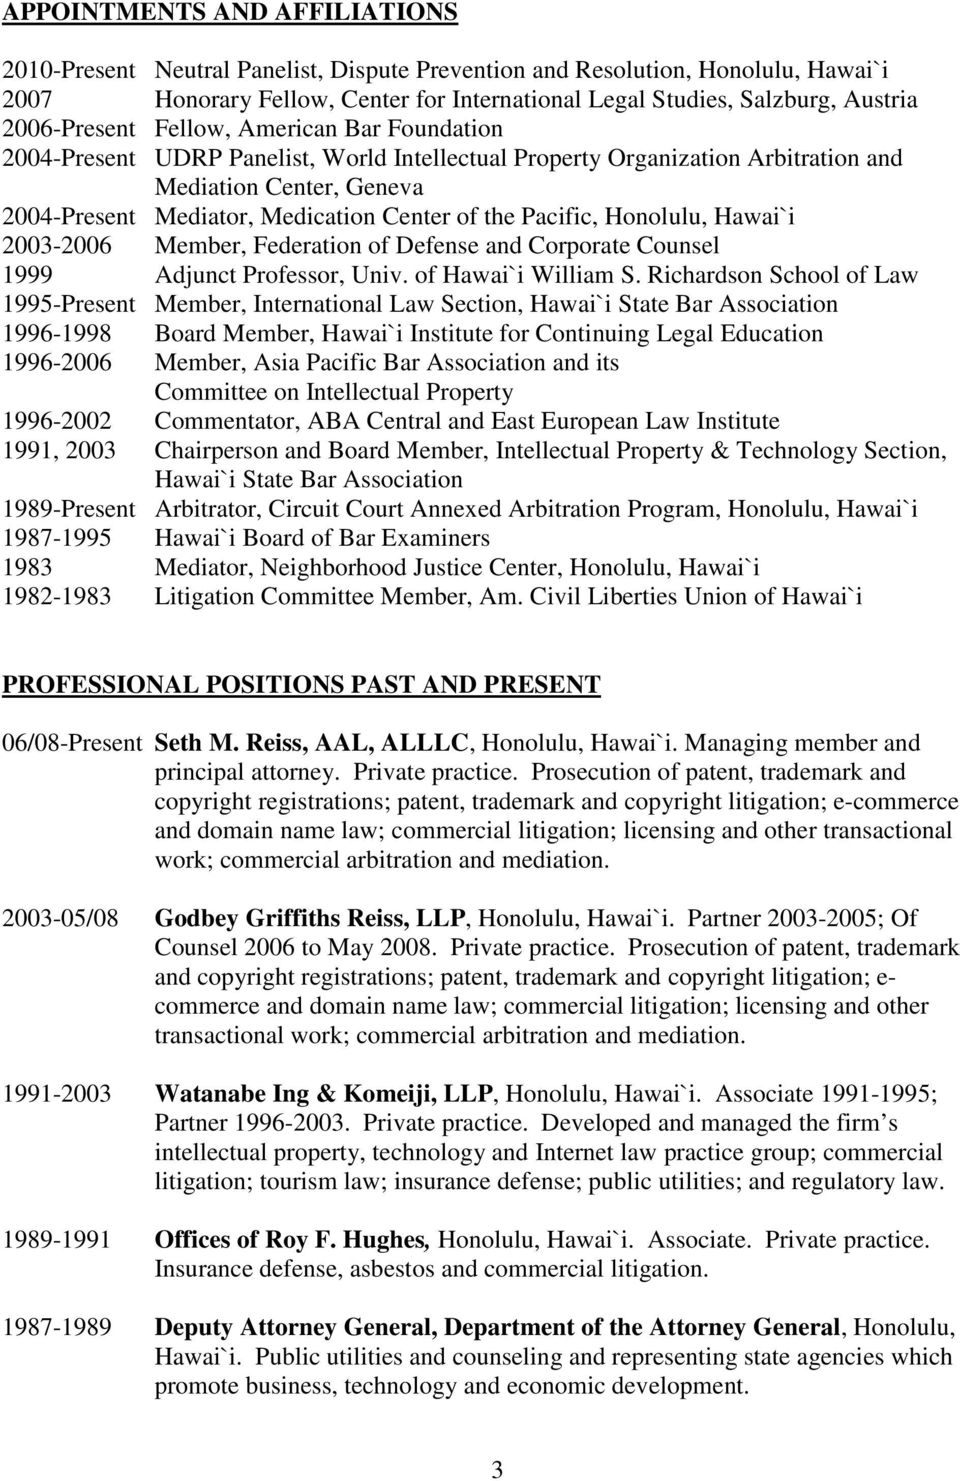 the Pacific, Honolulu, Hawai`i 2003-2006 Member, Federation of Defense and Corporate Counsel 1999 Adjunct Professor, Univ. of Hawai`i William S.